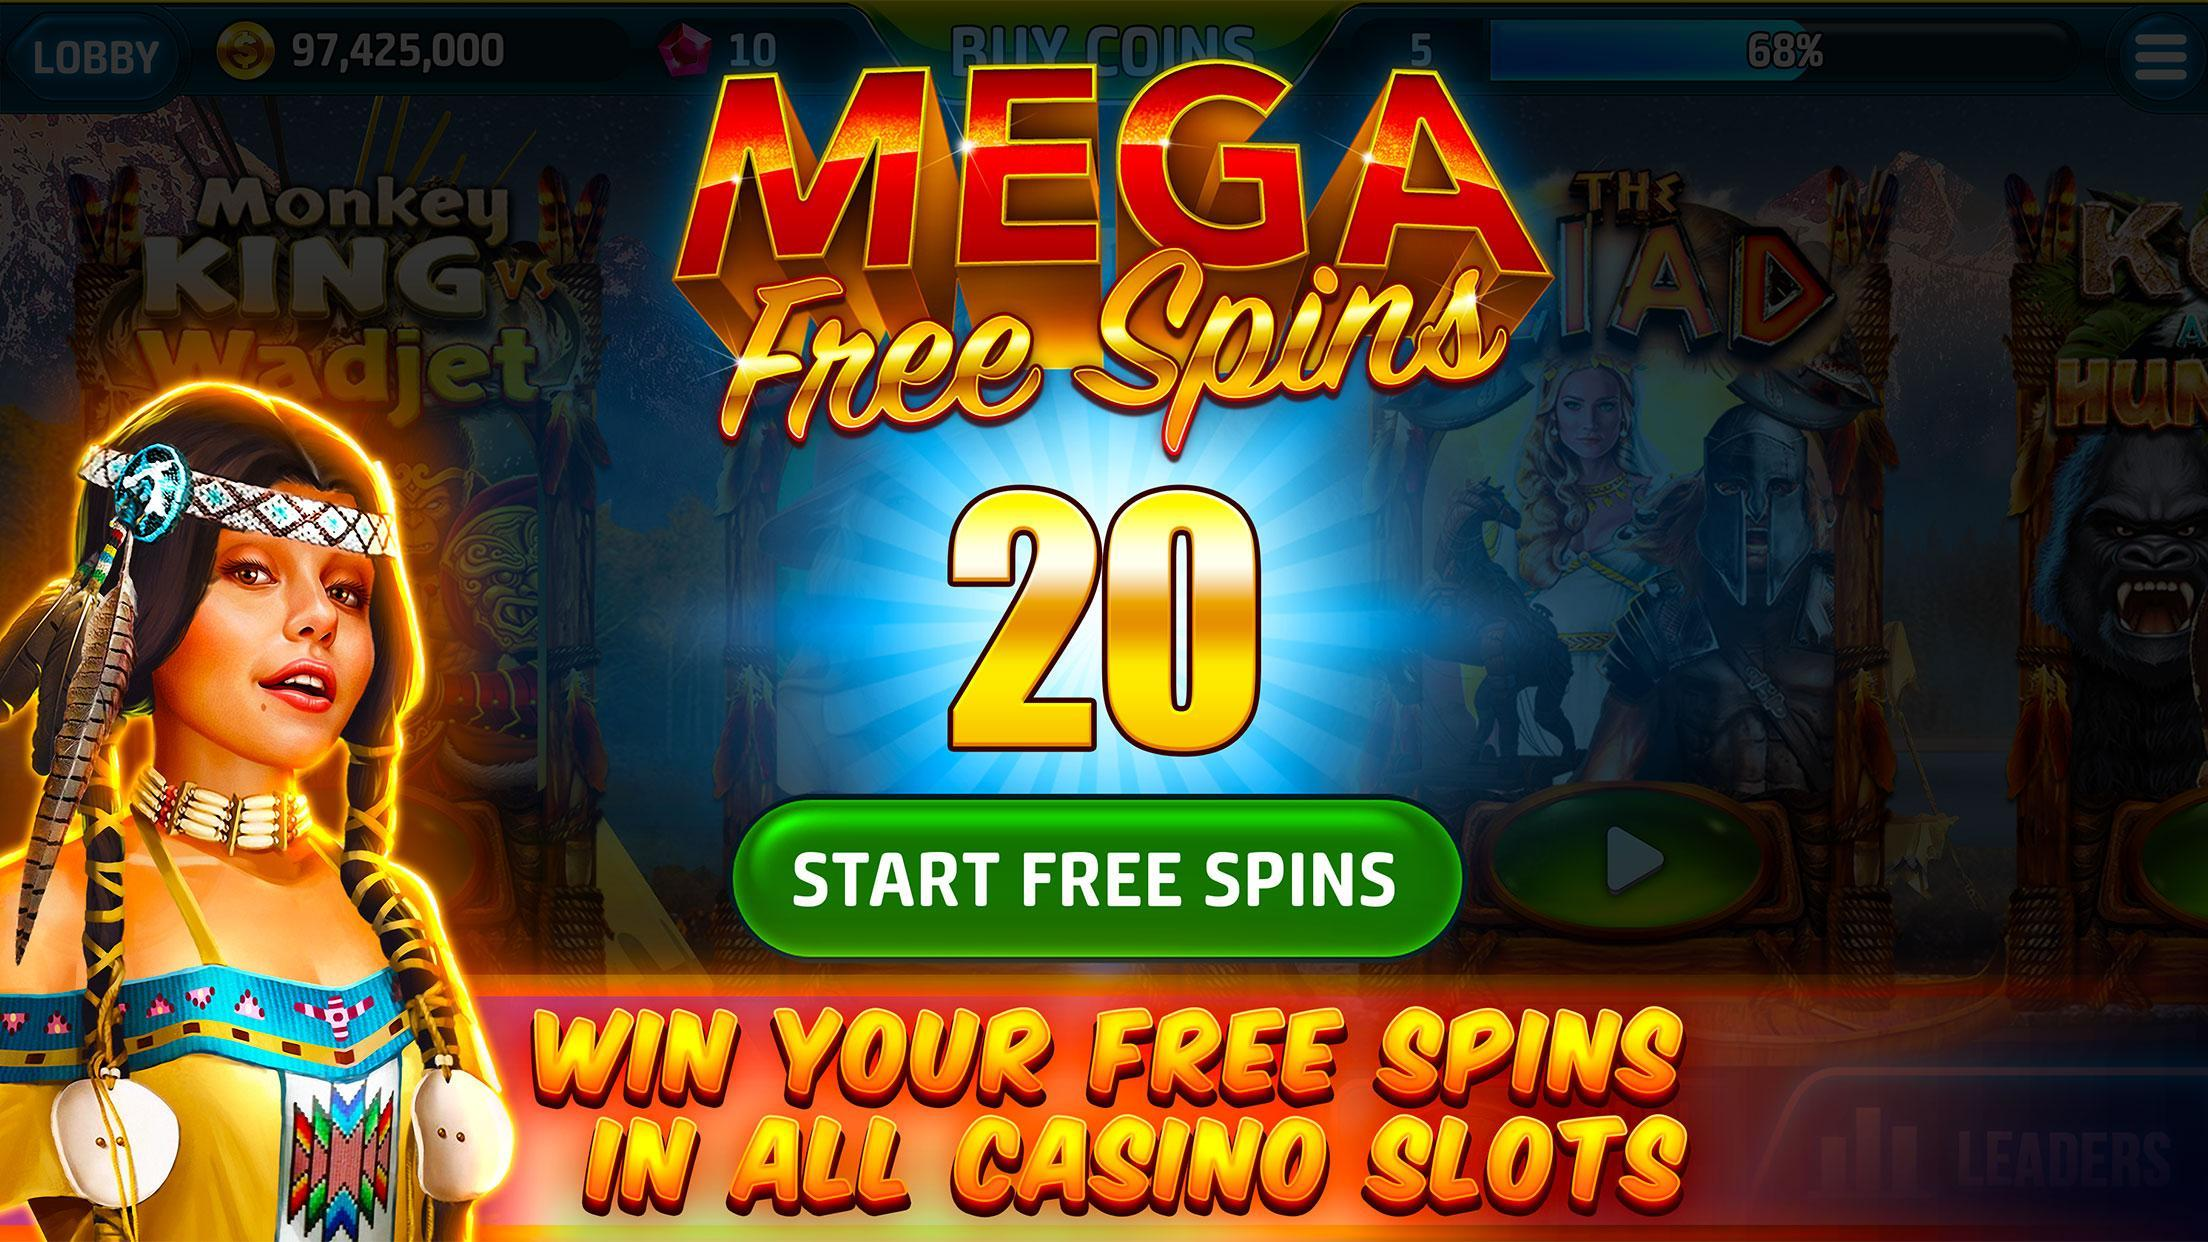 Slots Spirits Free Slot Machine Casino Game 2020 For Android Apk Download